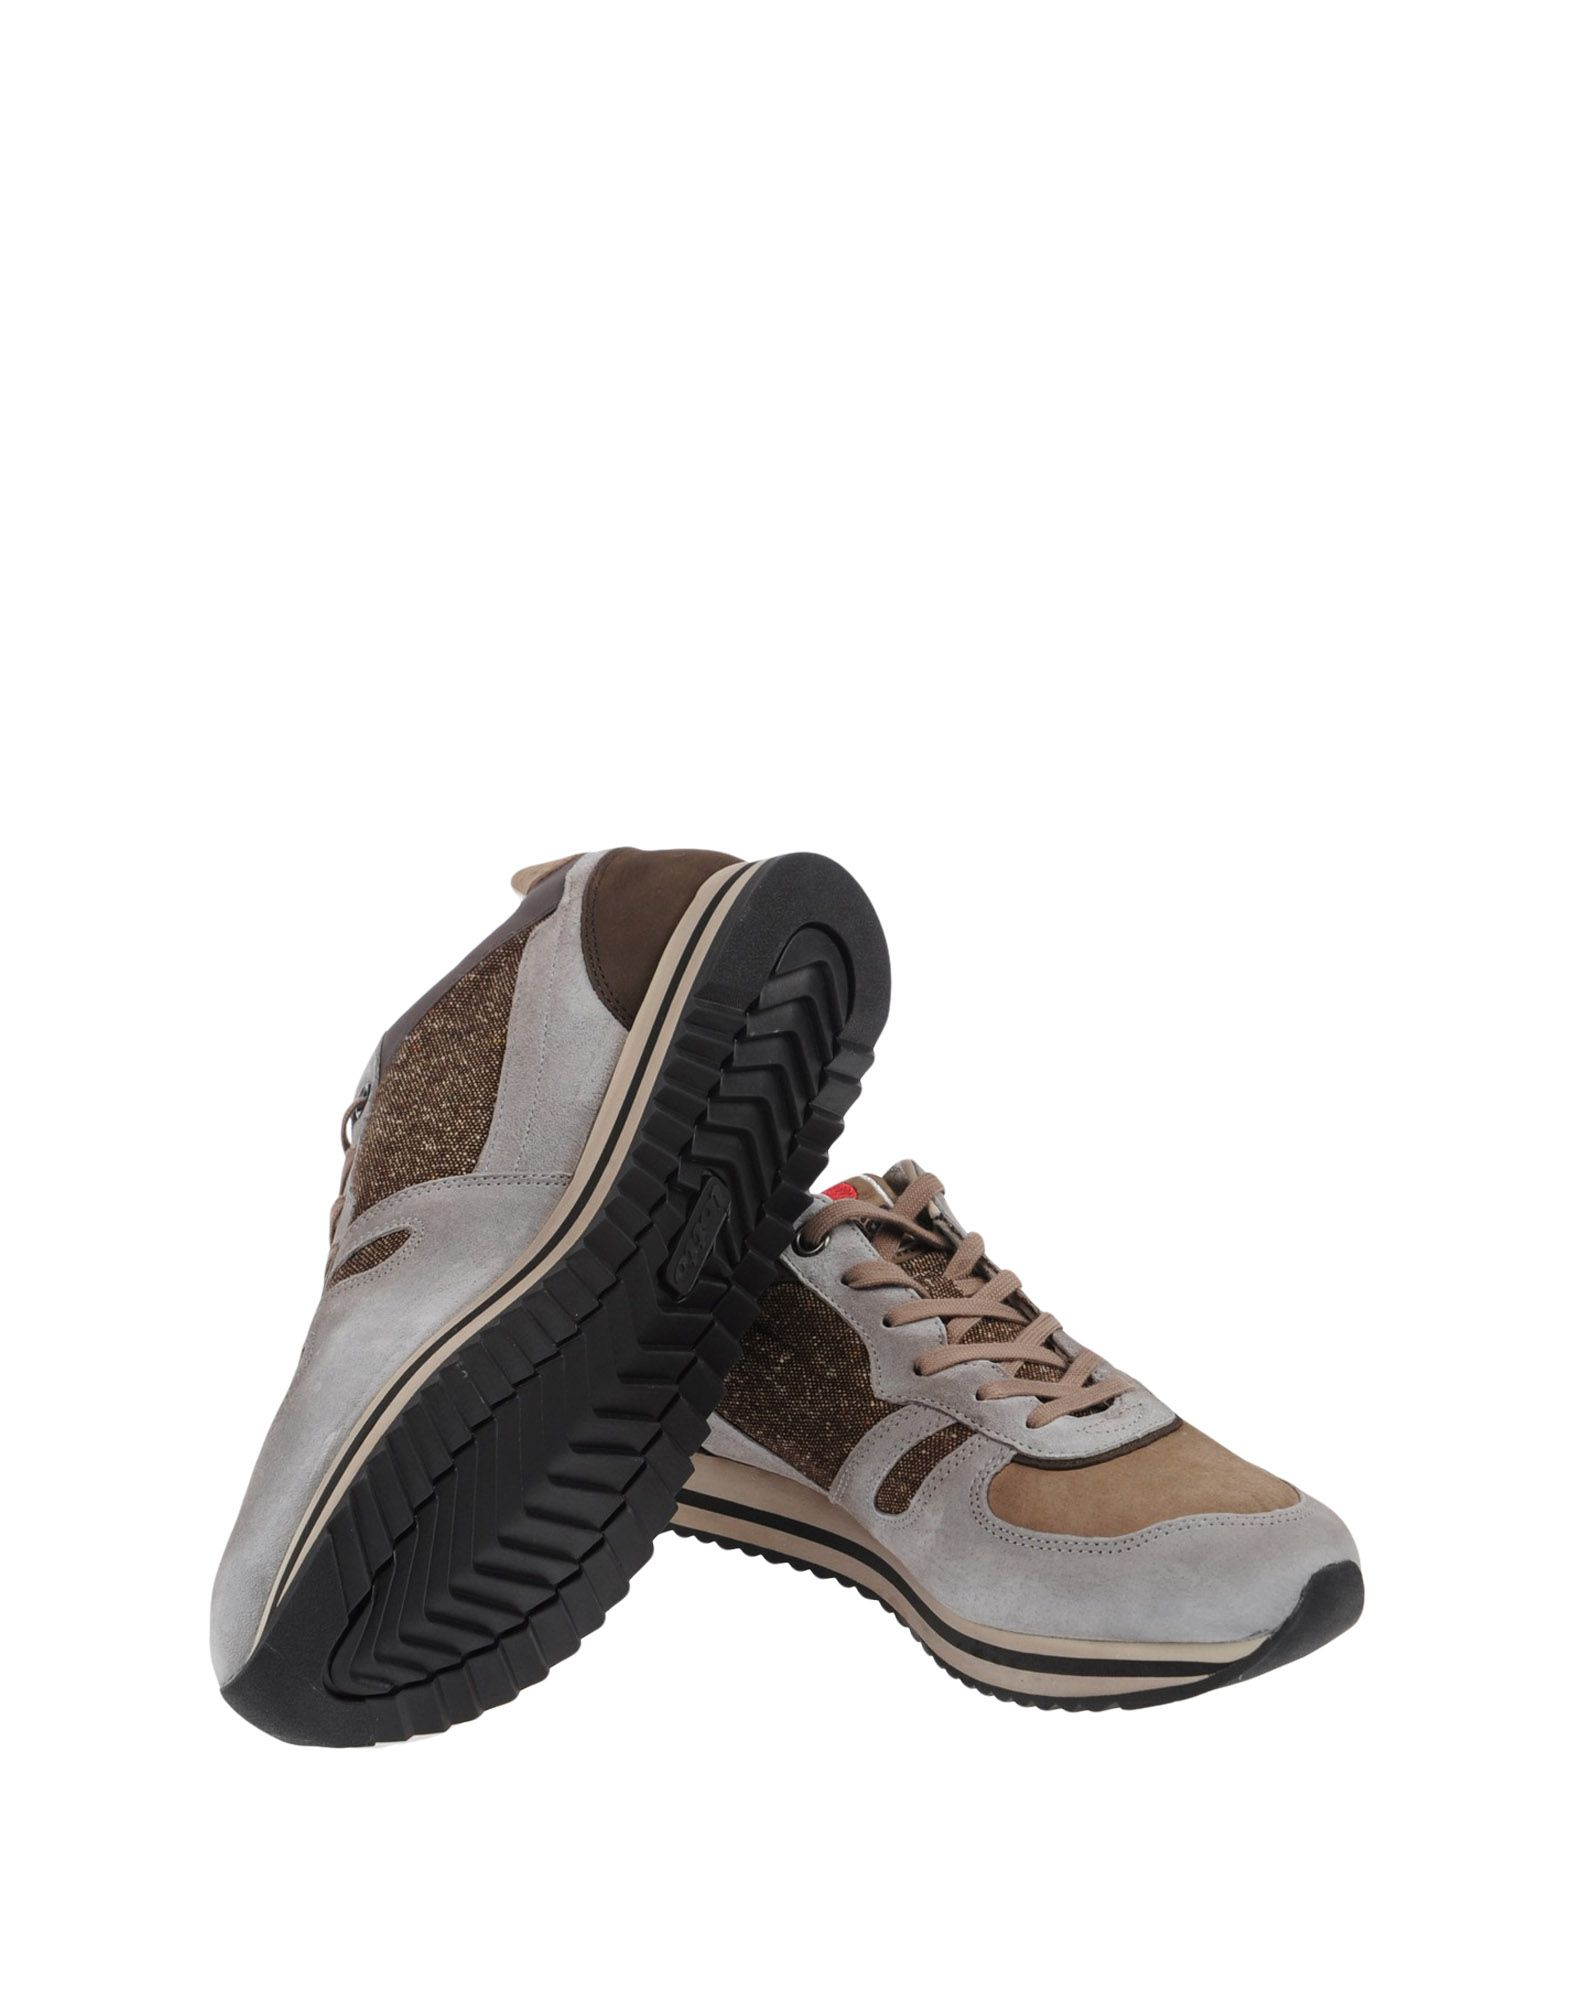 Sneakers Lotto Leggenda Osaka - Homme - Sneakers Lotto Leggenda sur